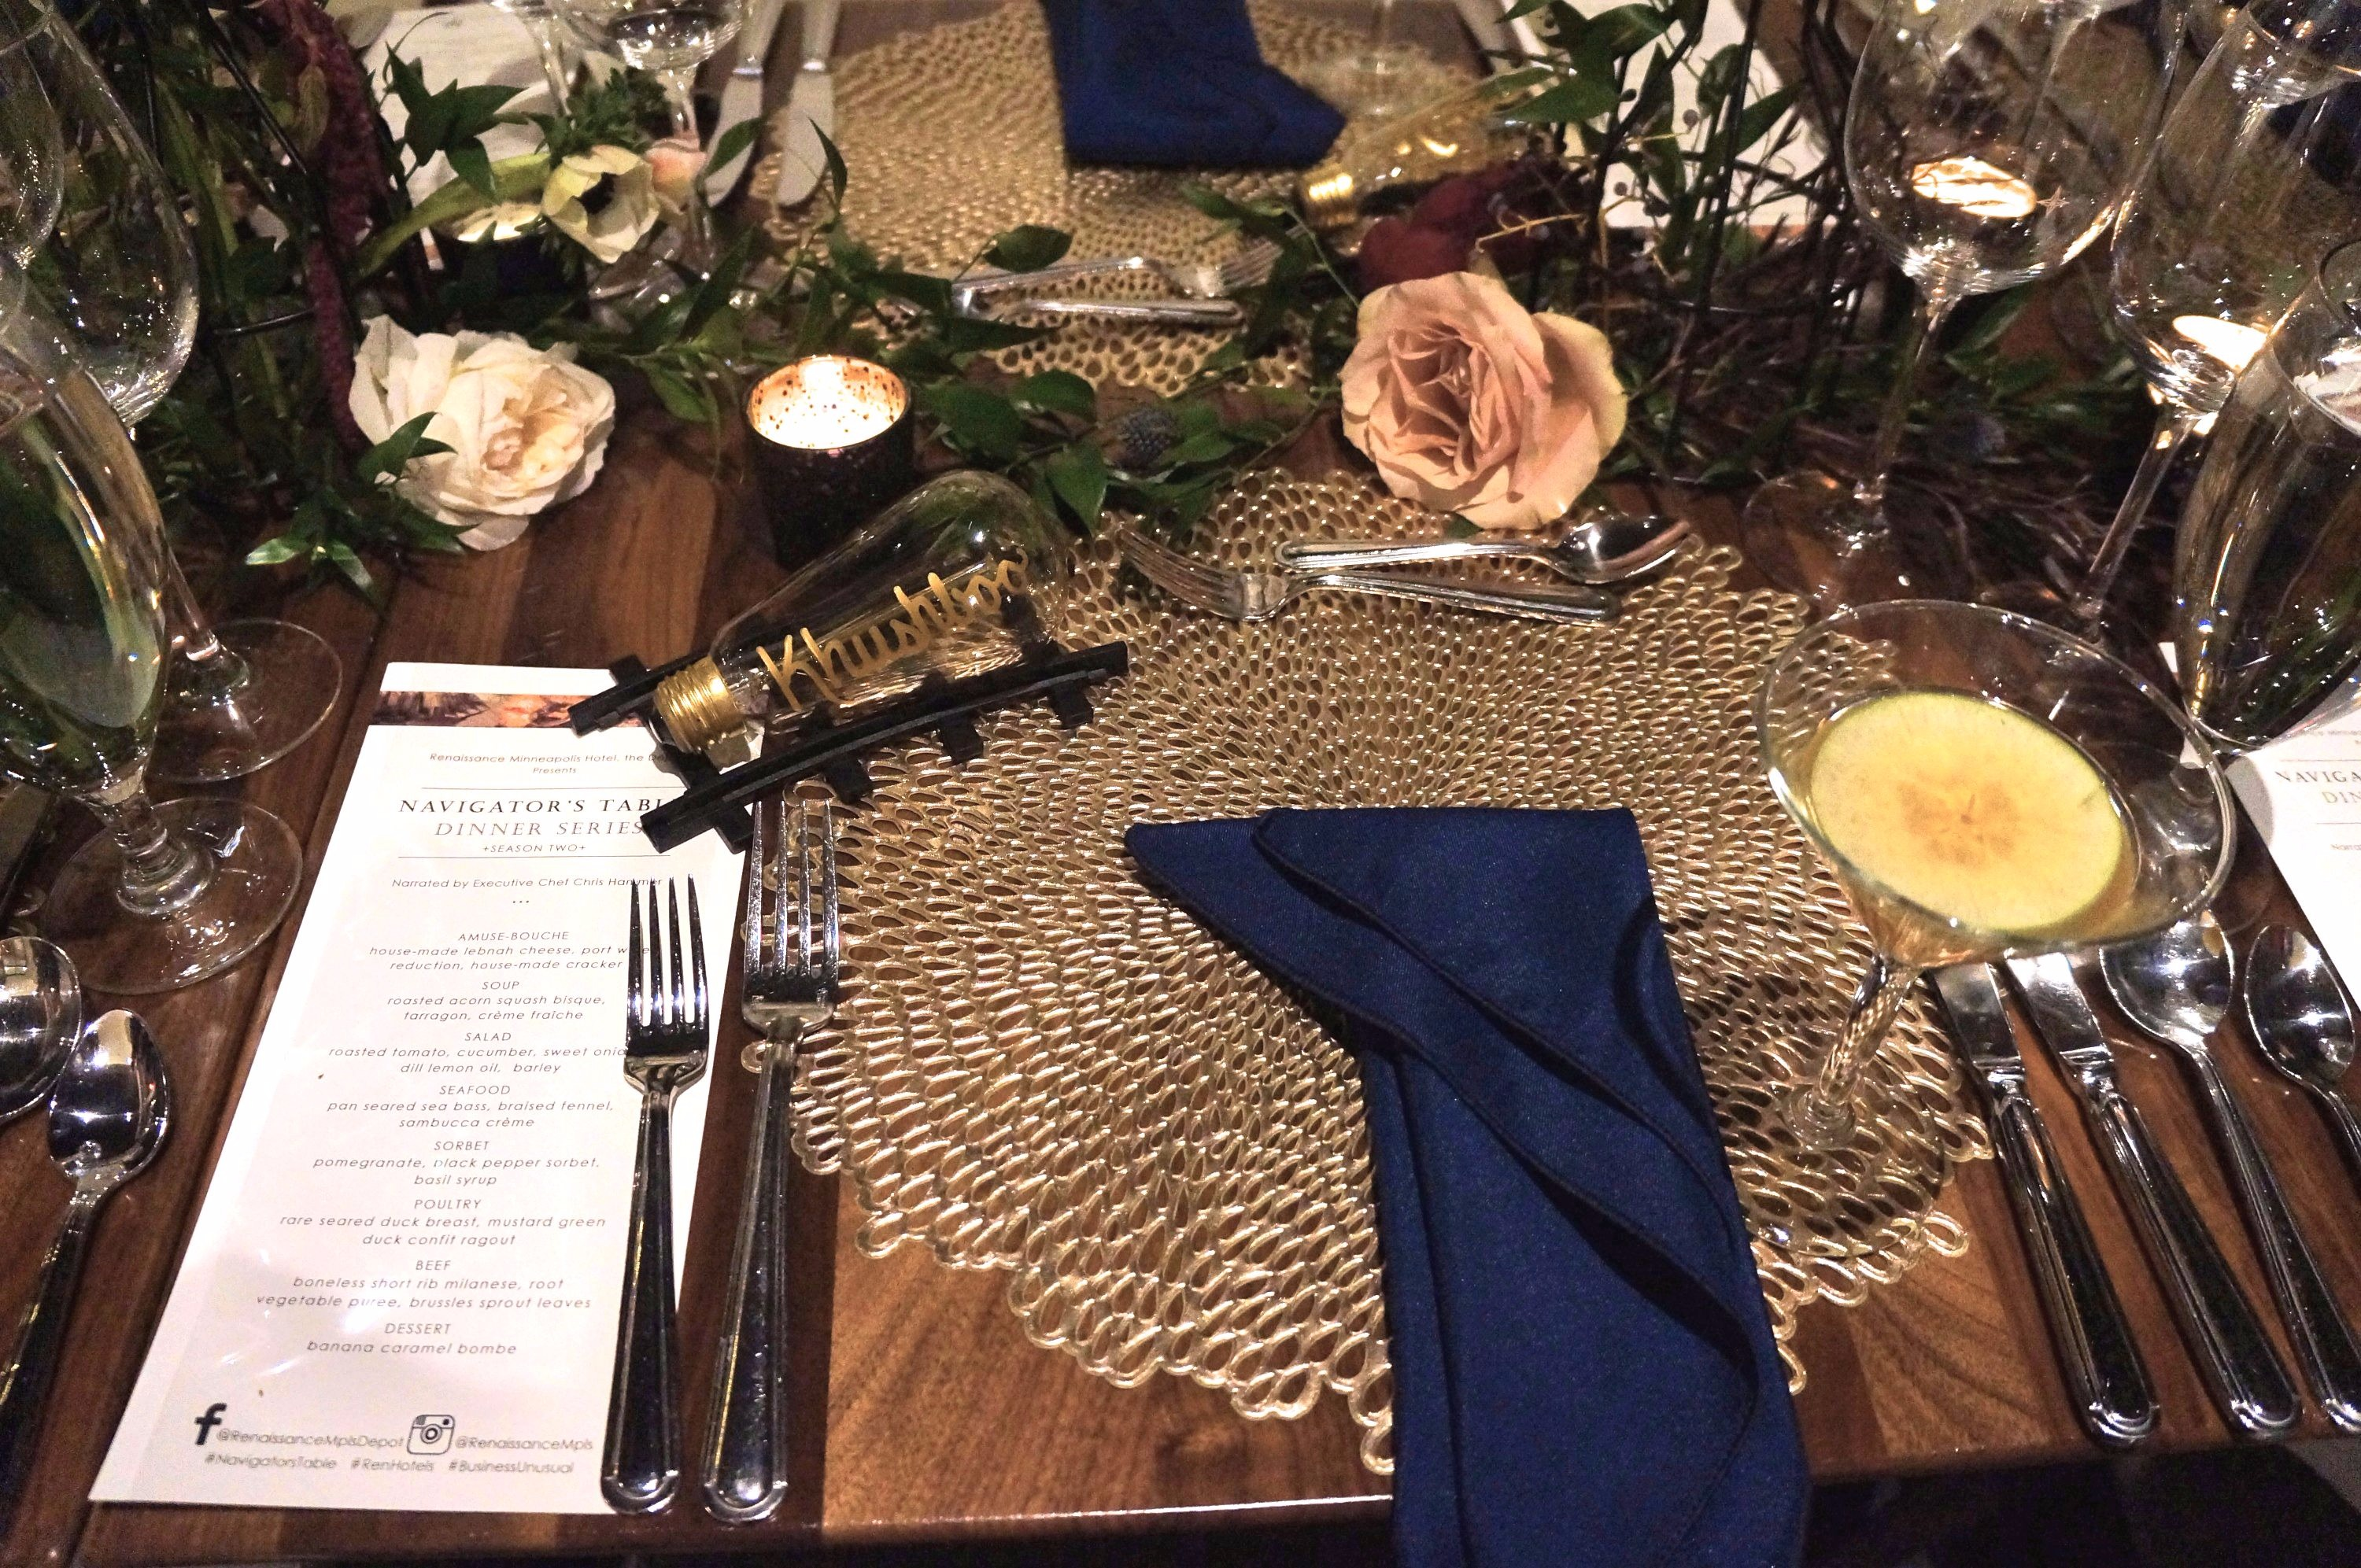 Navigator's Table Dinner Series